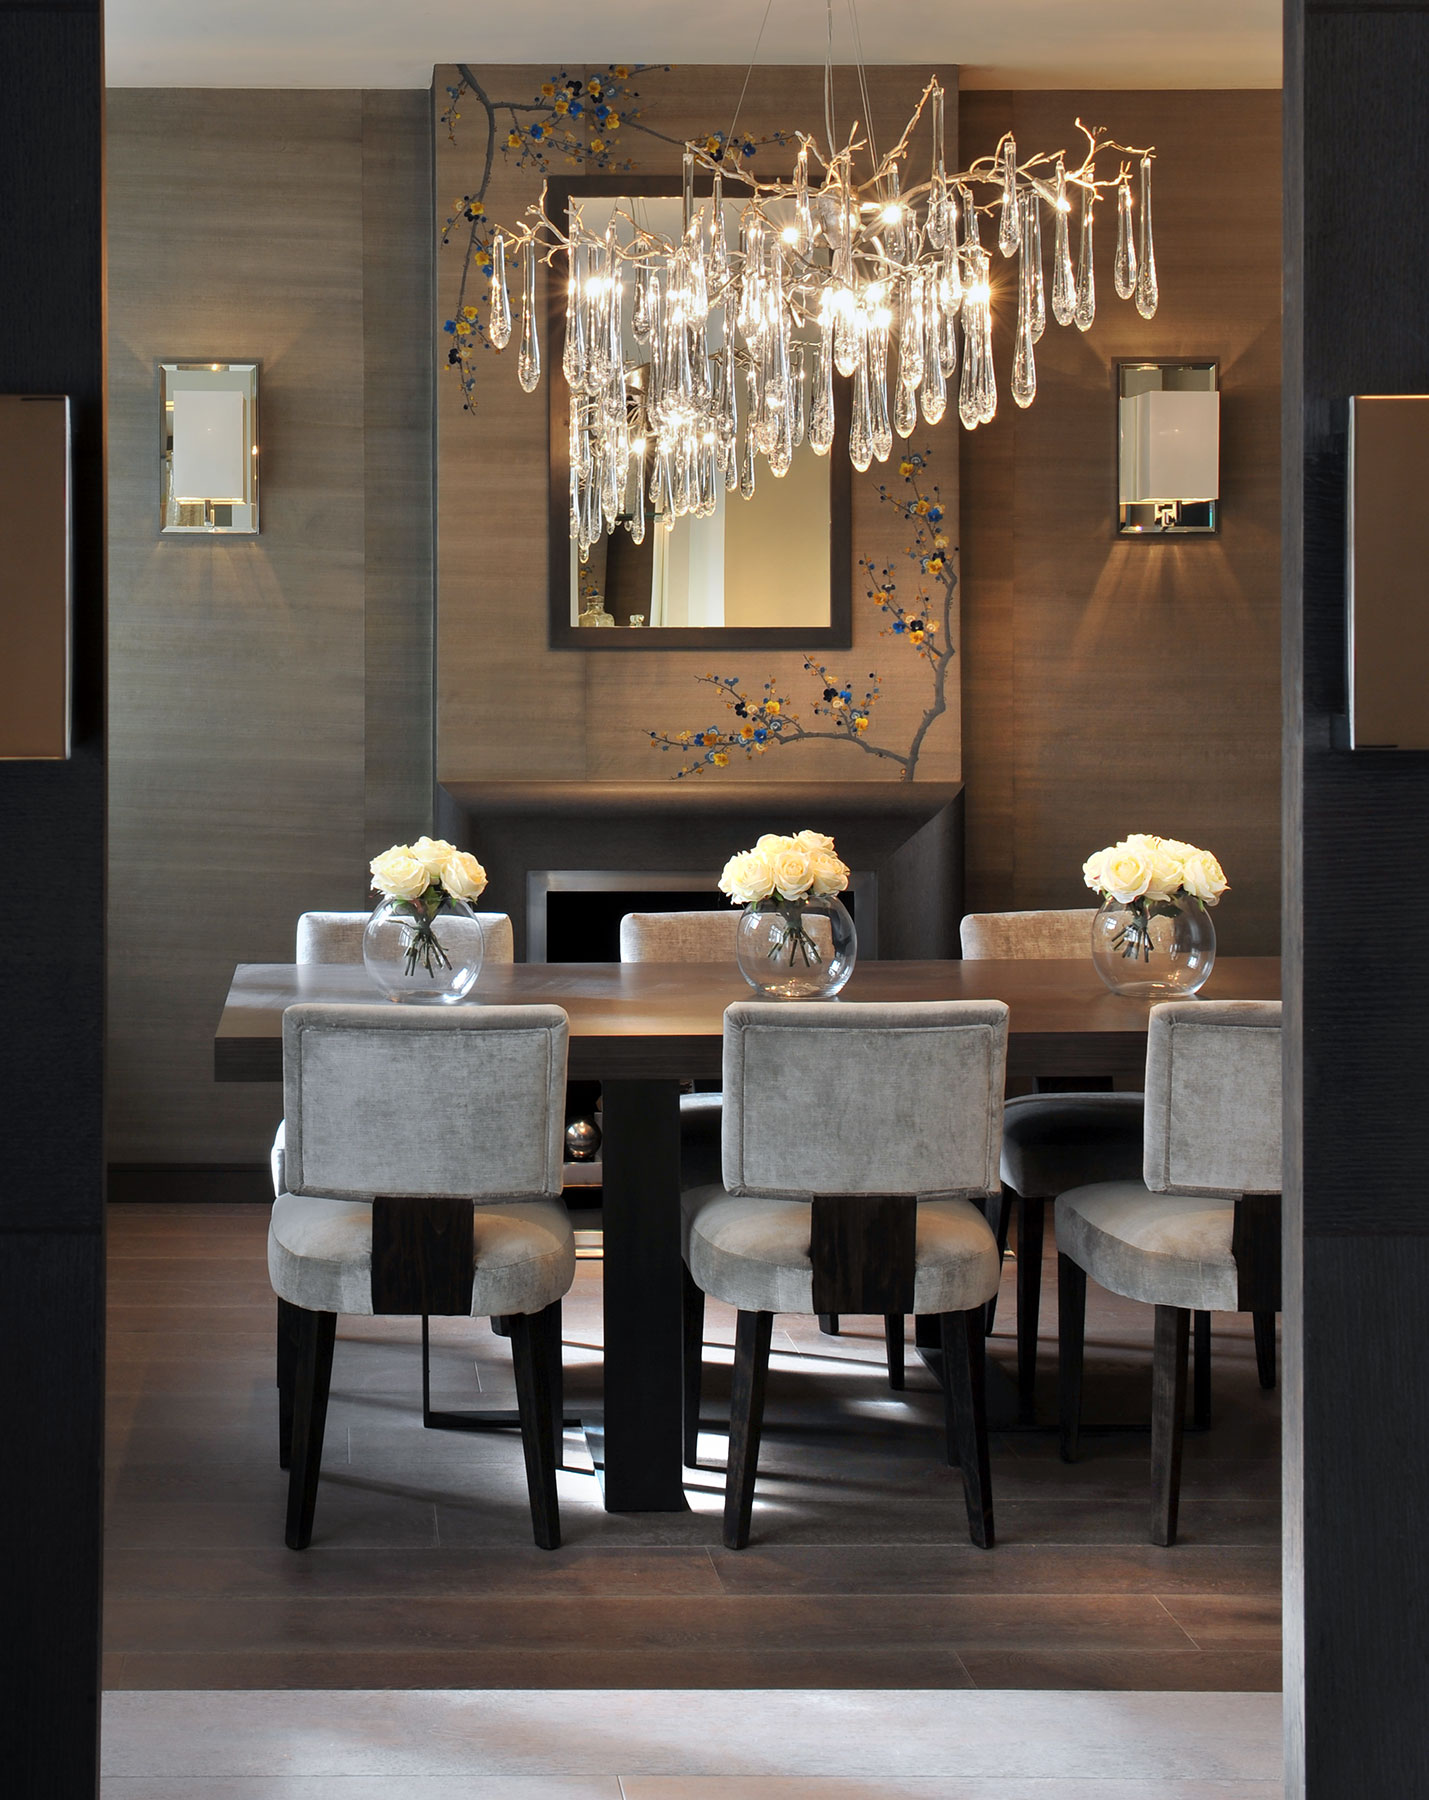 The Best Luxury Chandeliers for Your Living Room Luxury Chandeliers The Best Luxury Chandeliers for Your Living Room The Best Luxury Chandeliers for Your Living Room3